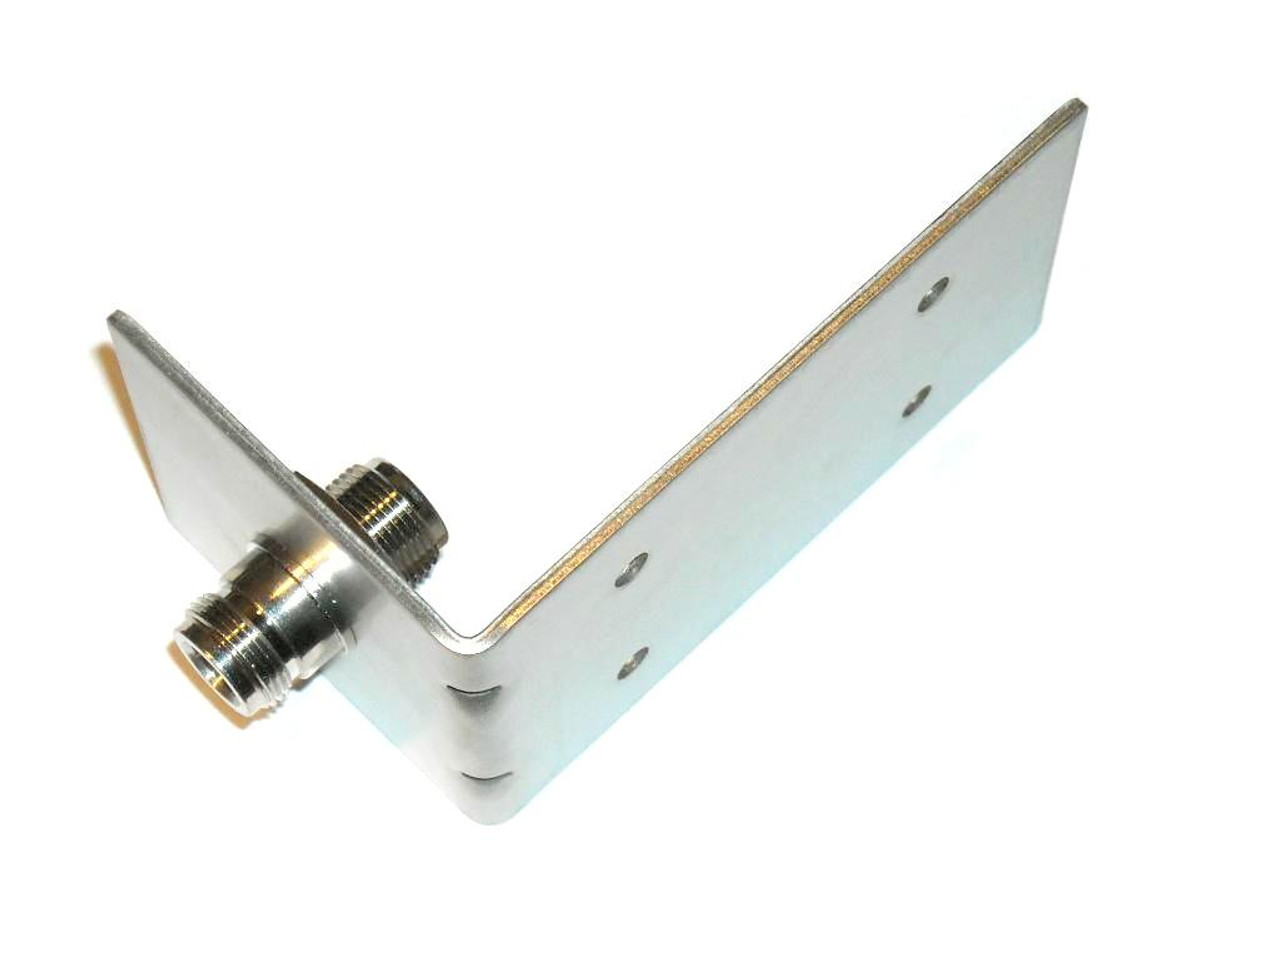 AM-403-NBH - Stainless Steel Antenna Mounting Bracket Type N Connector